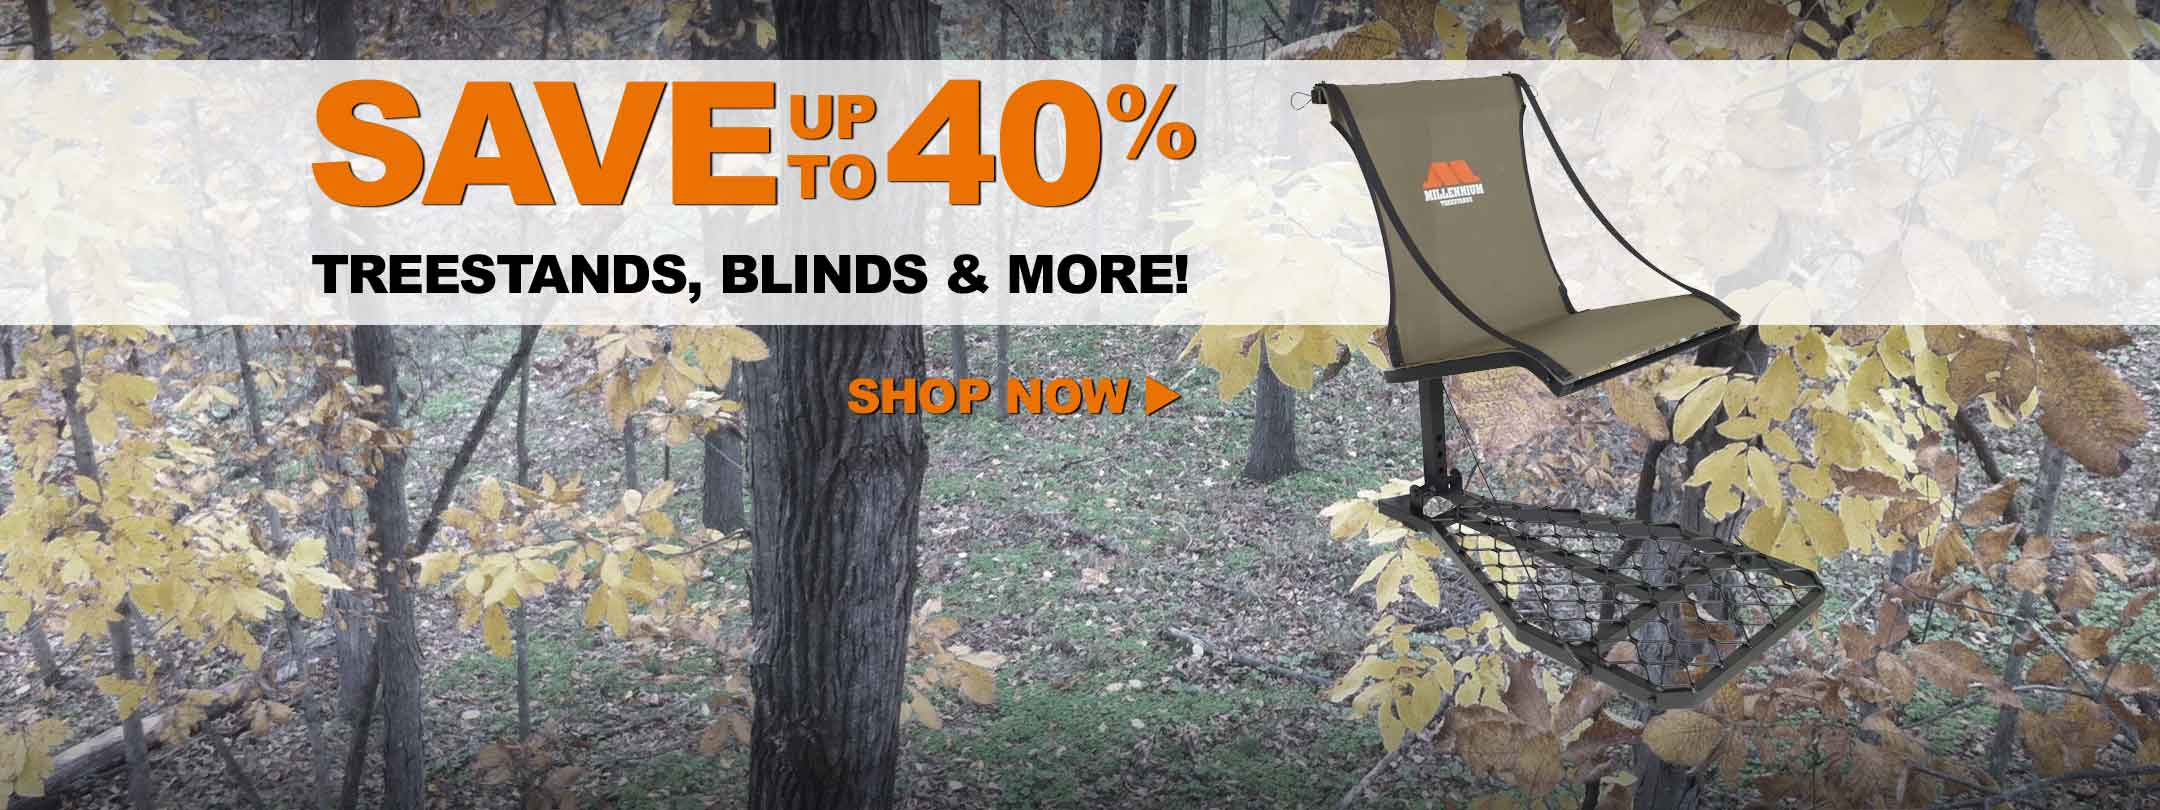 Get in the Hunt with Treestands & Blinds from Rivers Edge, Tree Spider, Summit, & More